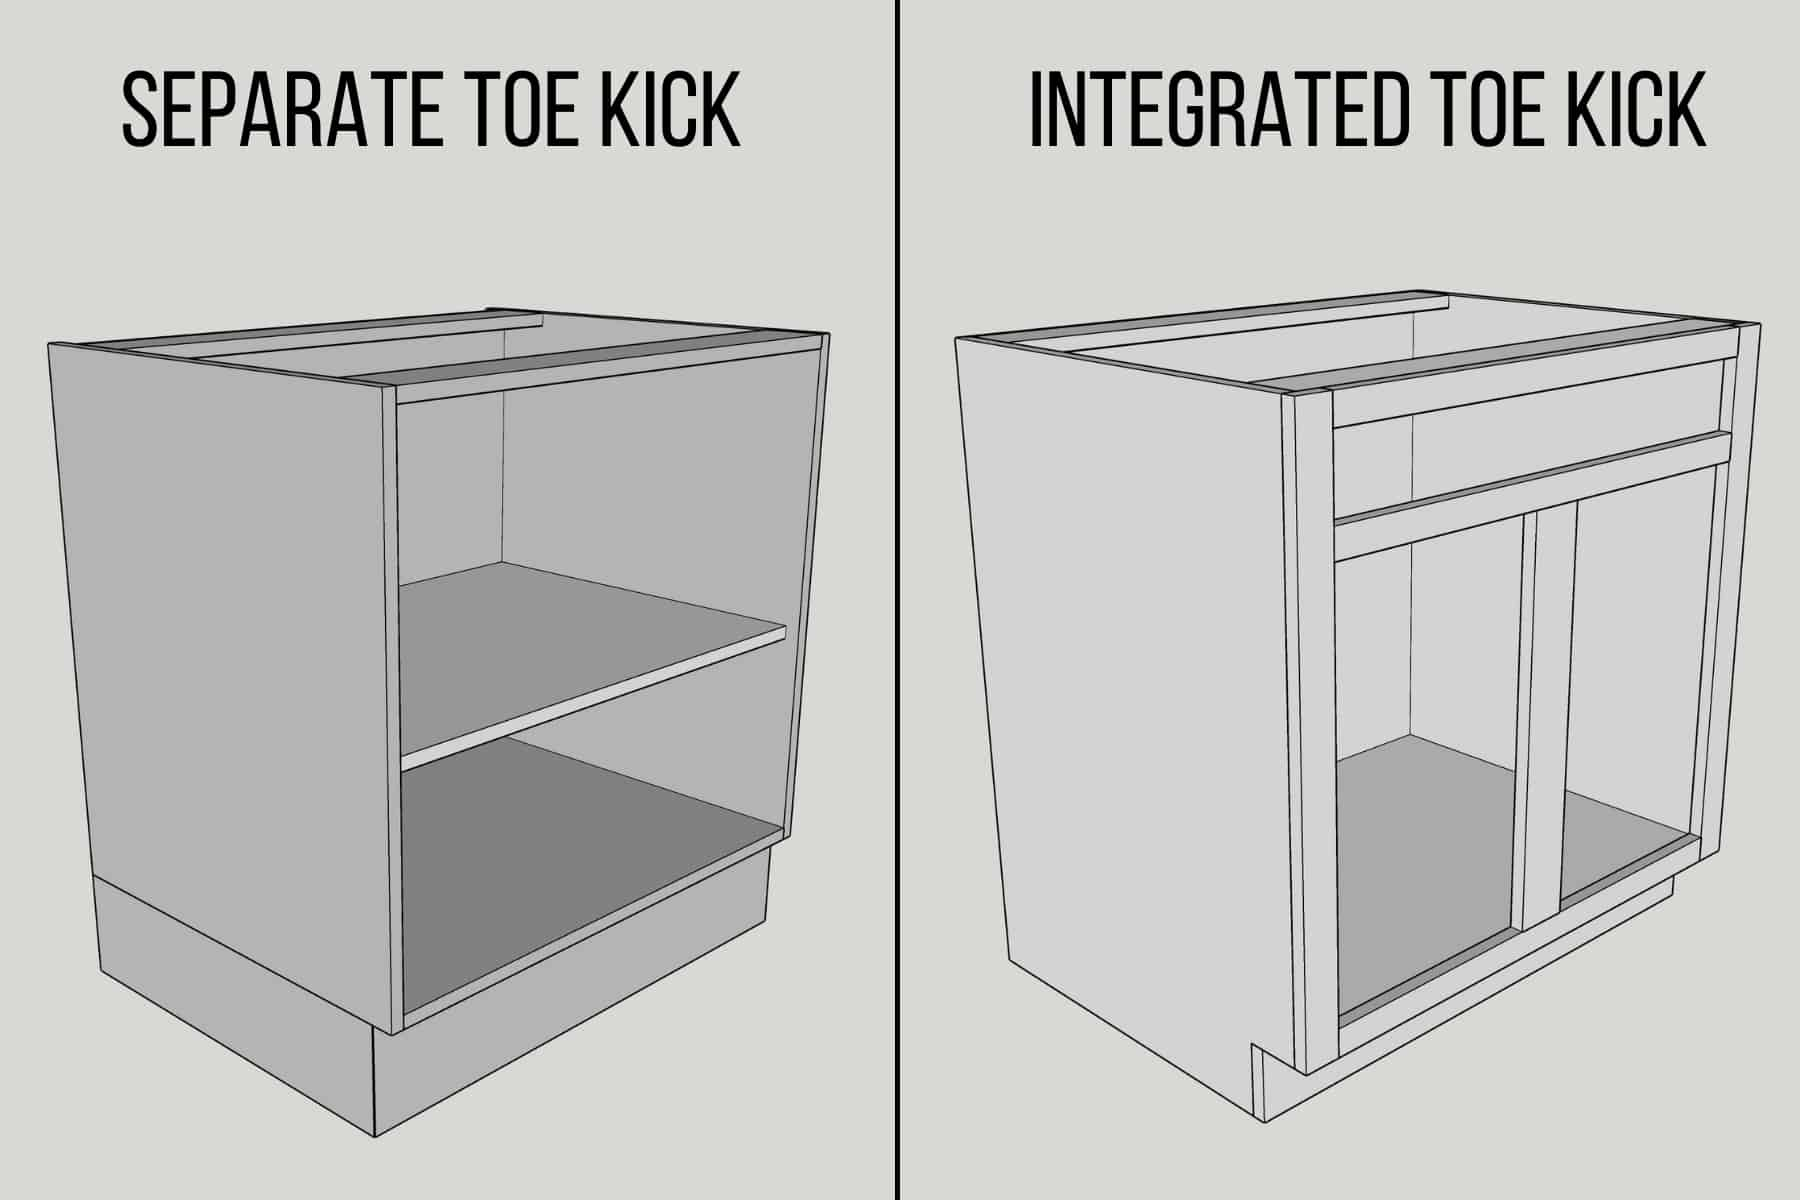 two different cabinet toe kick styles - separate toe kick and integrated toe kick